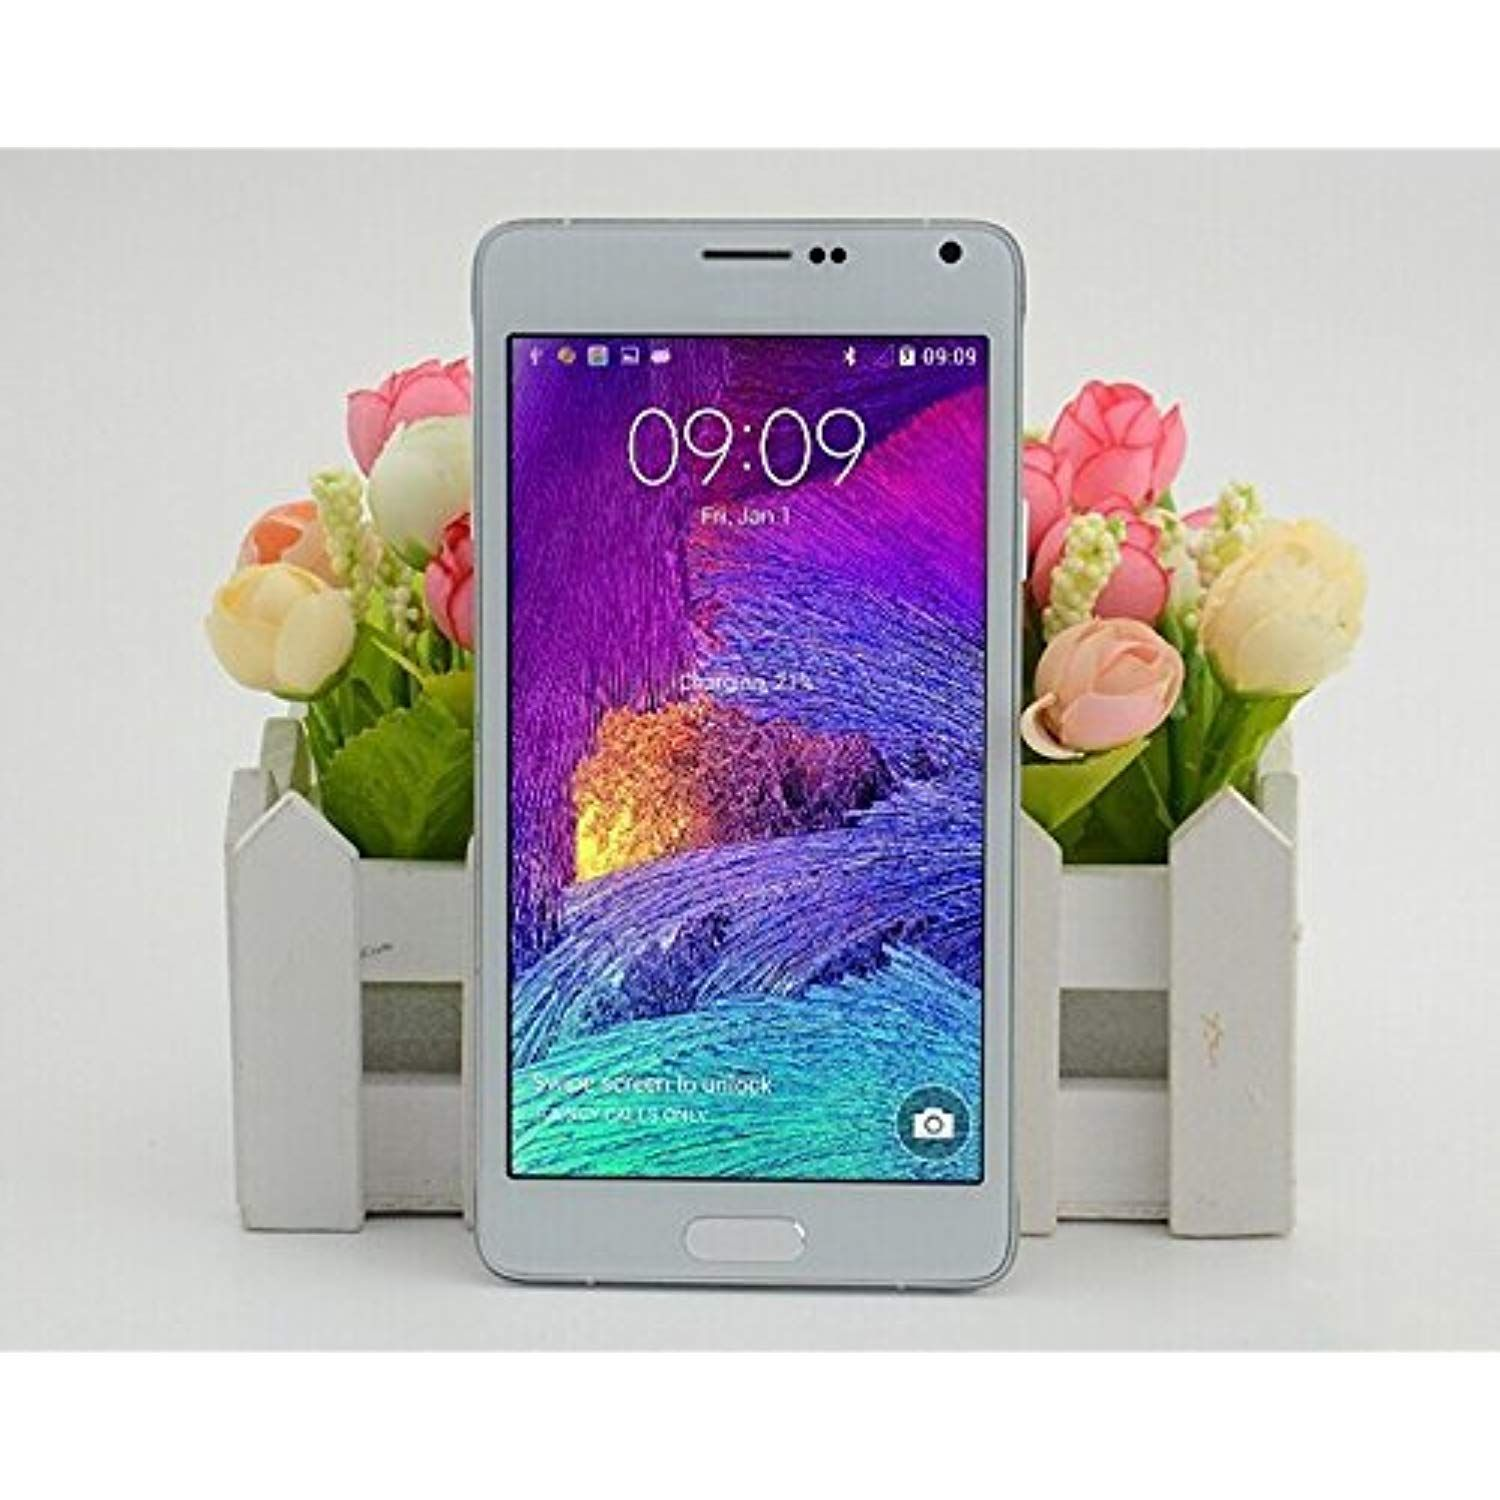 Mobiper N4 Smartphone Android 4.4 MTK6582 5.7 Inch Screen